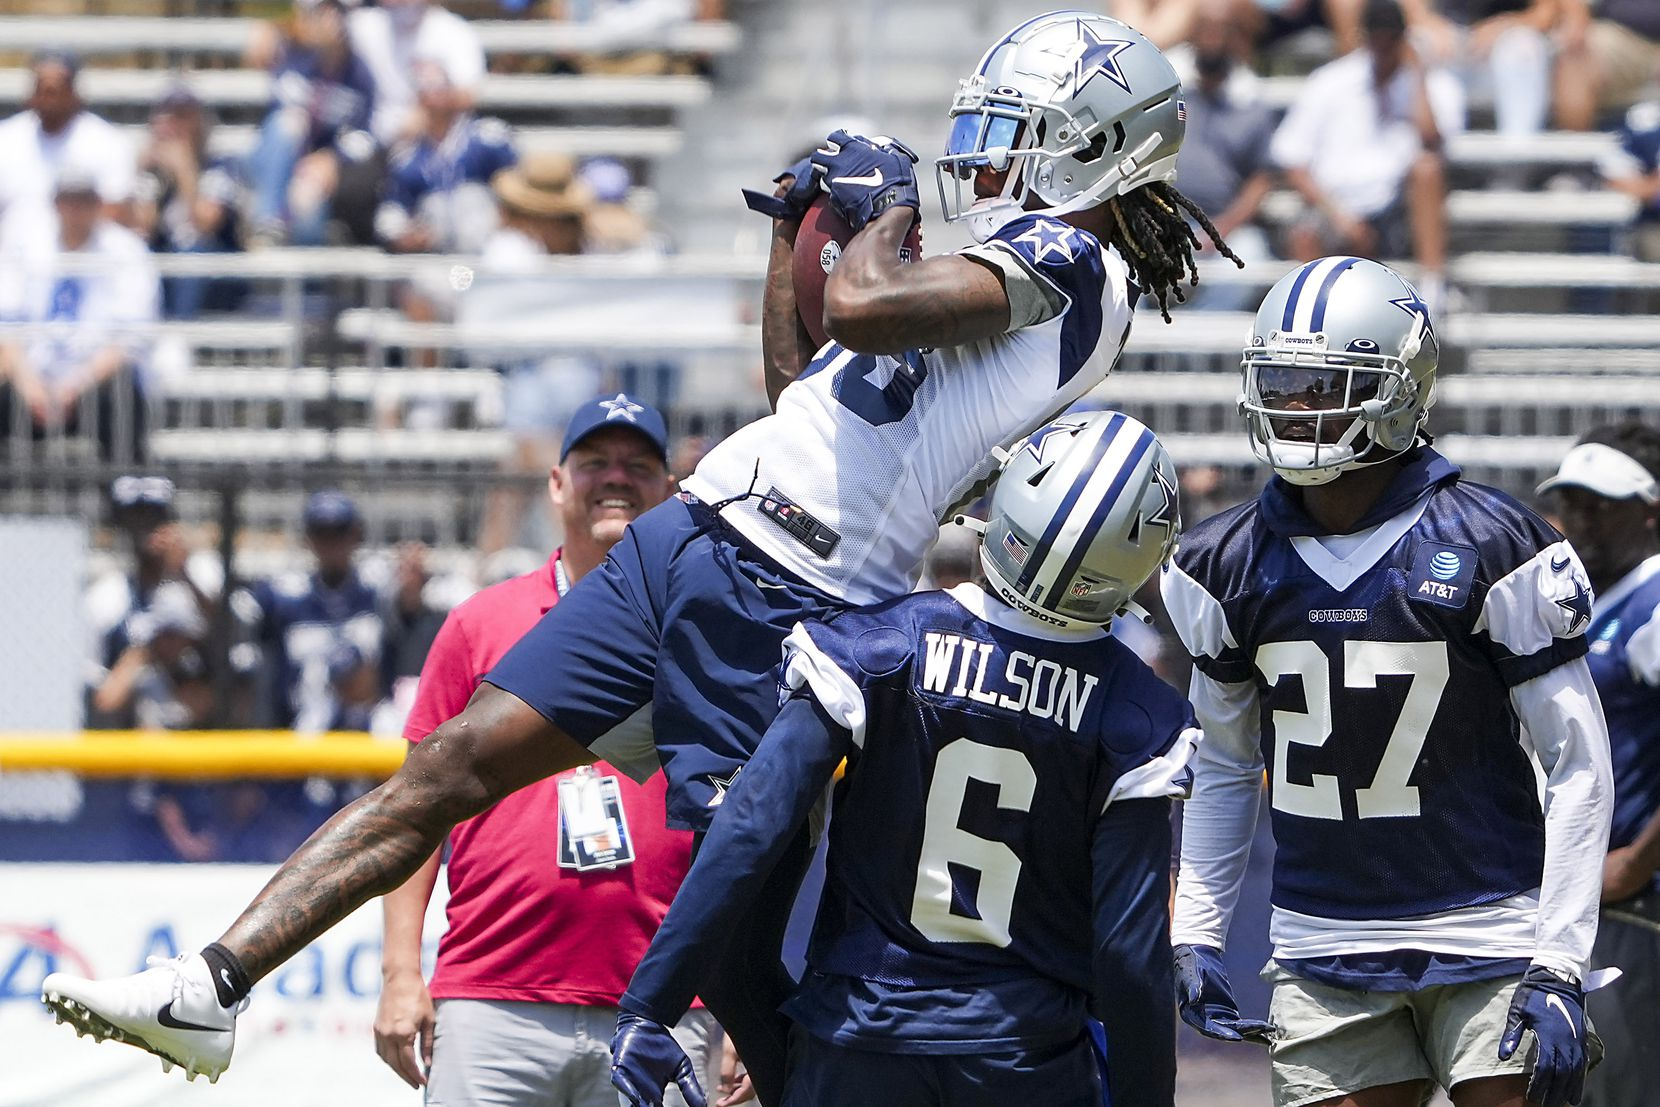 Dallas Cowboys wide receiver CeeDee Lamb (88) makes a catch over safety Donovan Wilson (6) and cornerback Trevon Diggs (27) during a practice at training camp on Tuesday, July 27, 2021, in Oxnard, Calif.